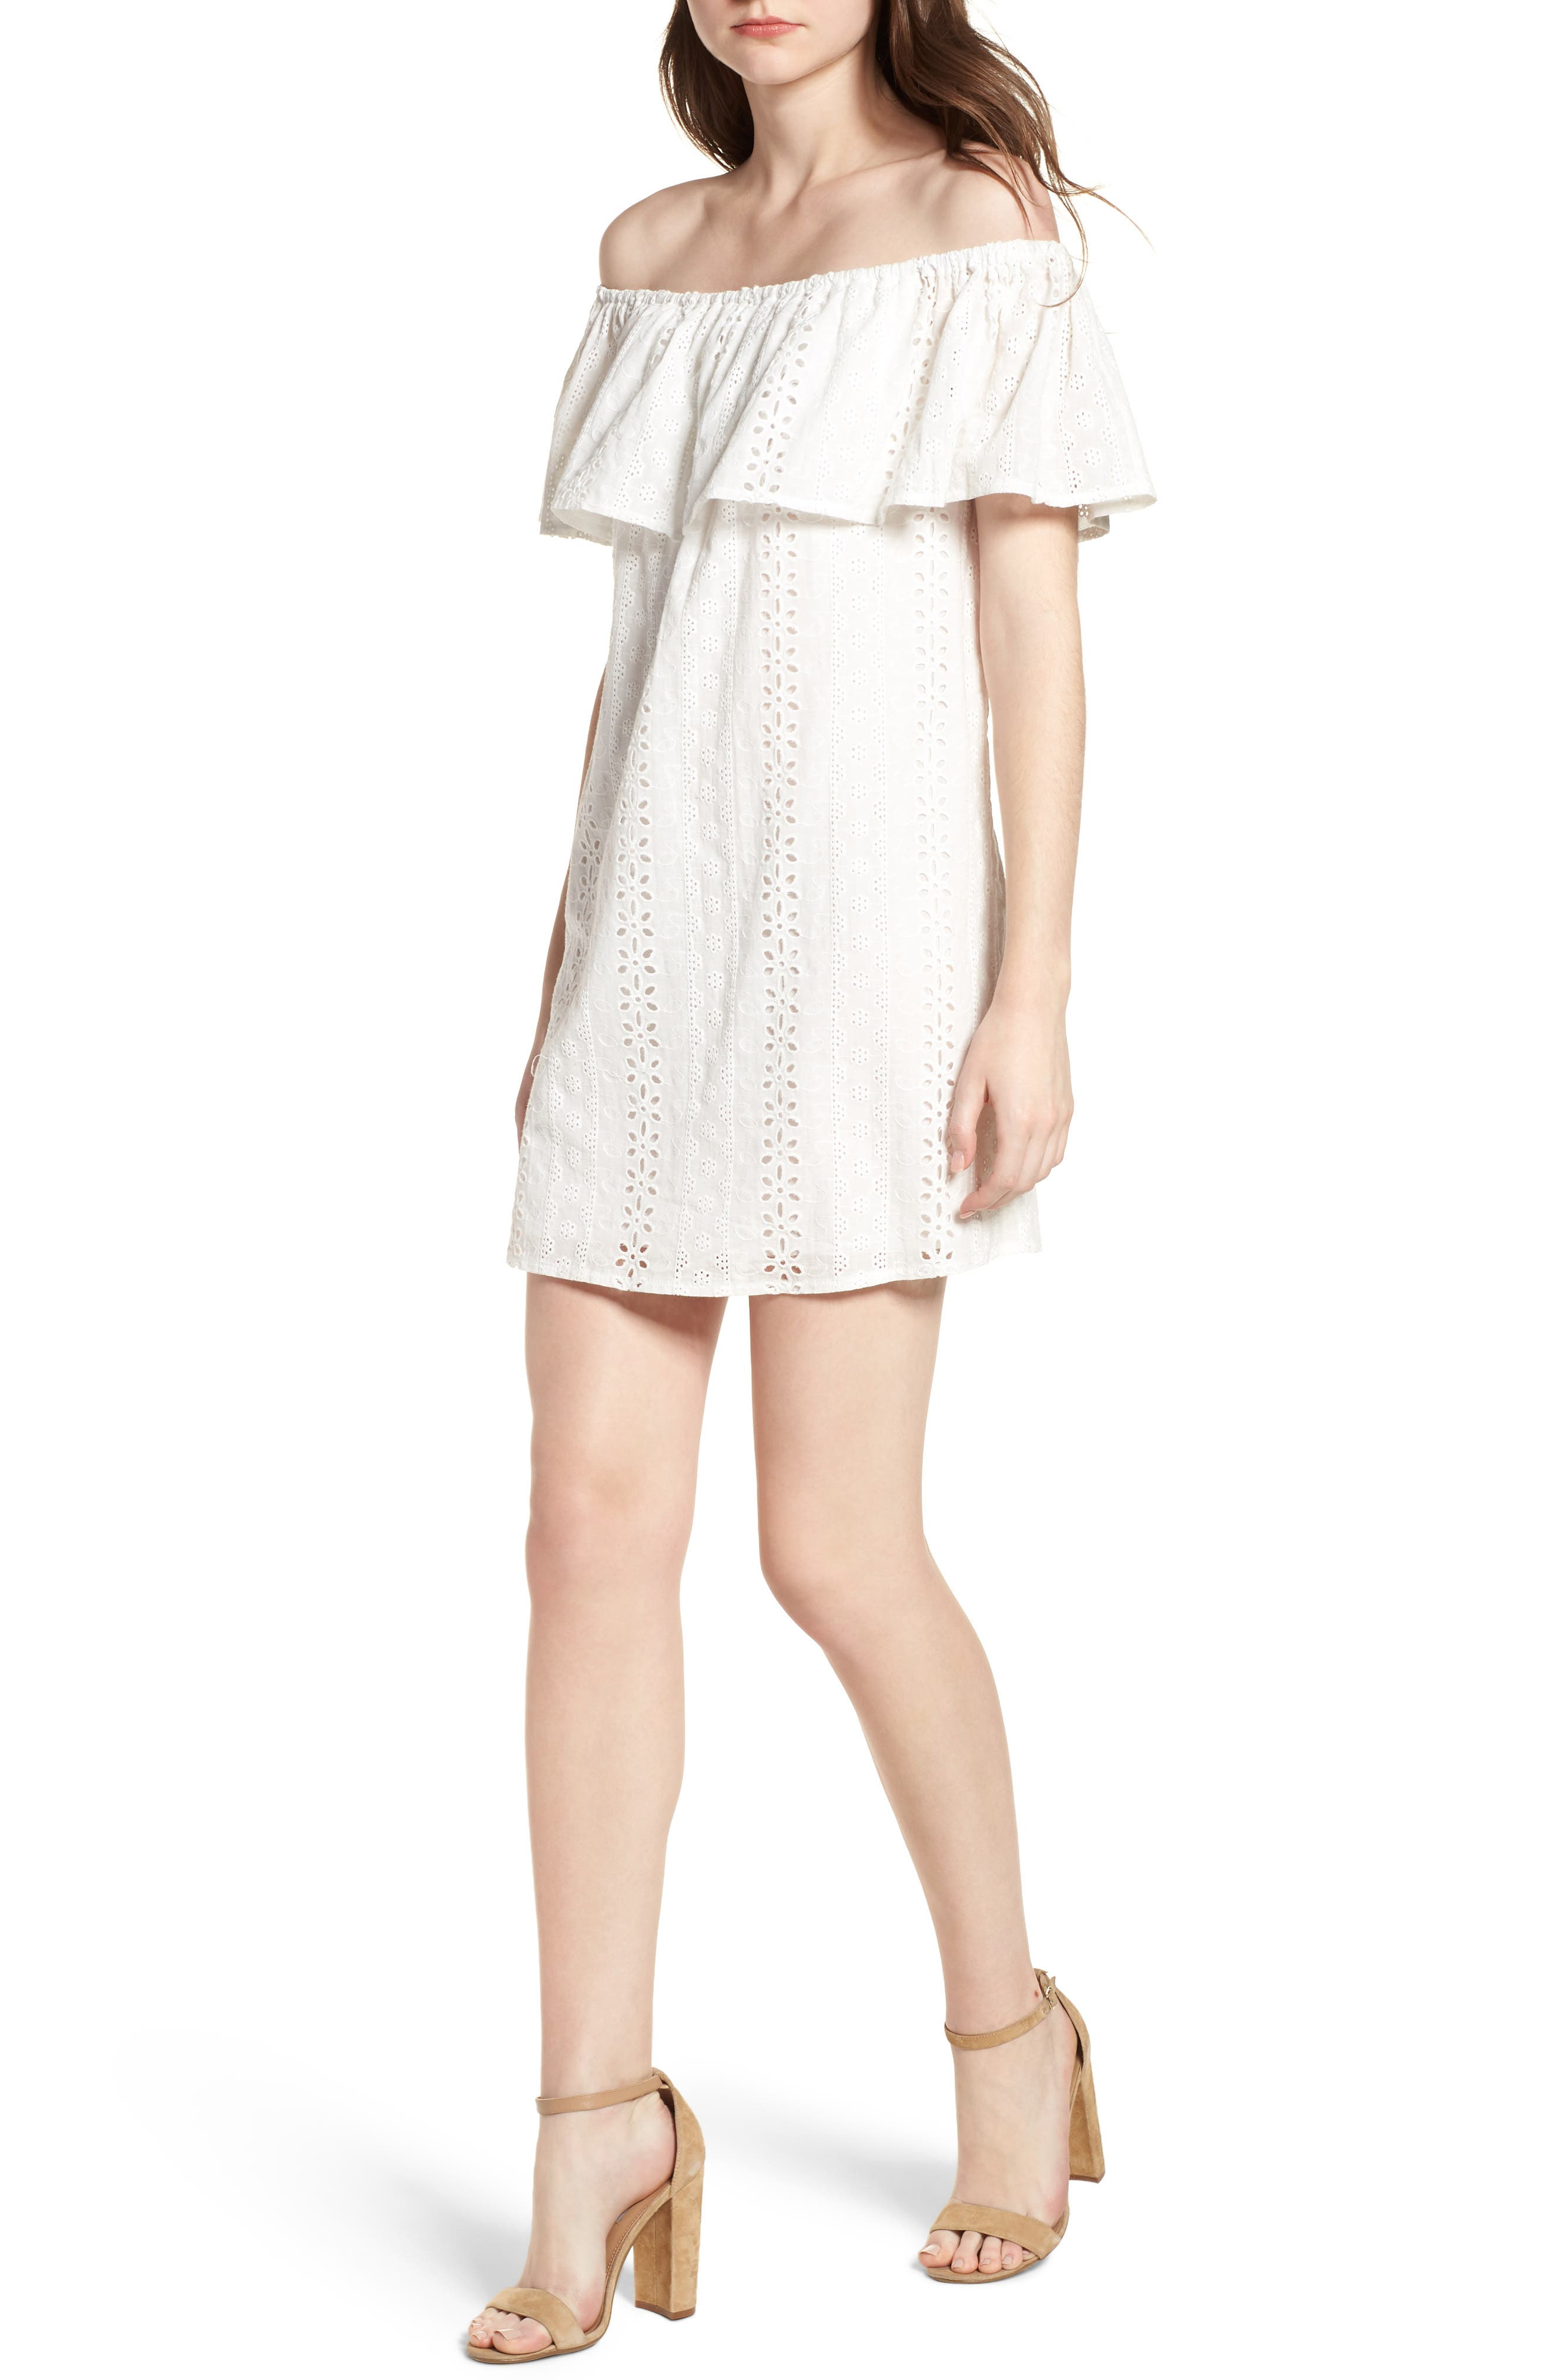 Bishop + Young Eyelet Ruffle Off the Shoulder Dress,                             Main thumbnail 1, color,                             White